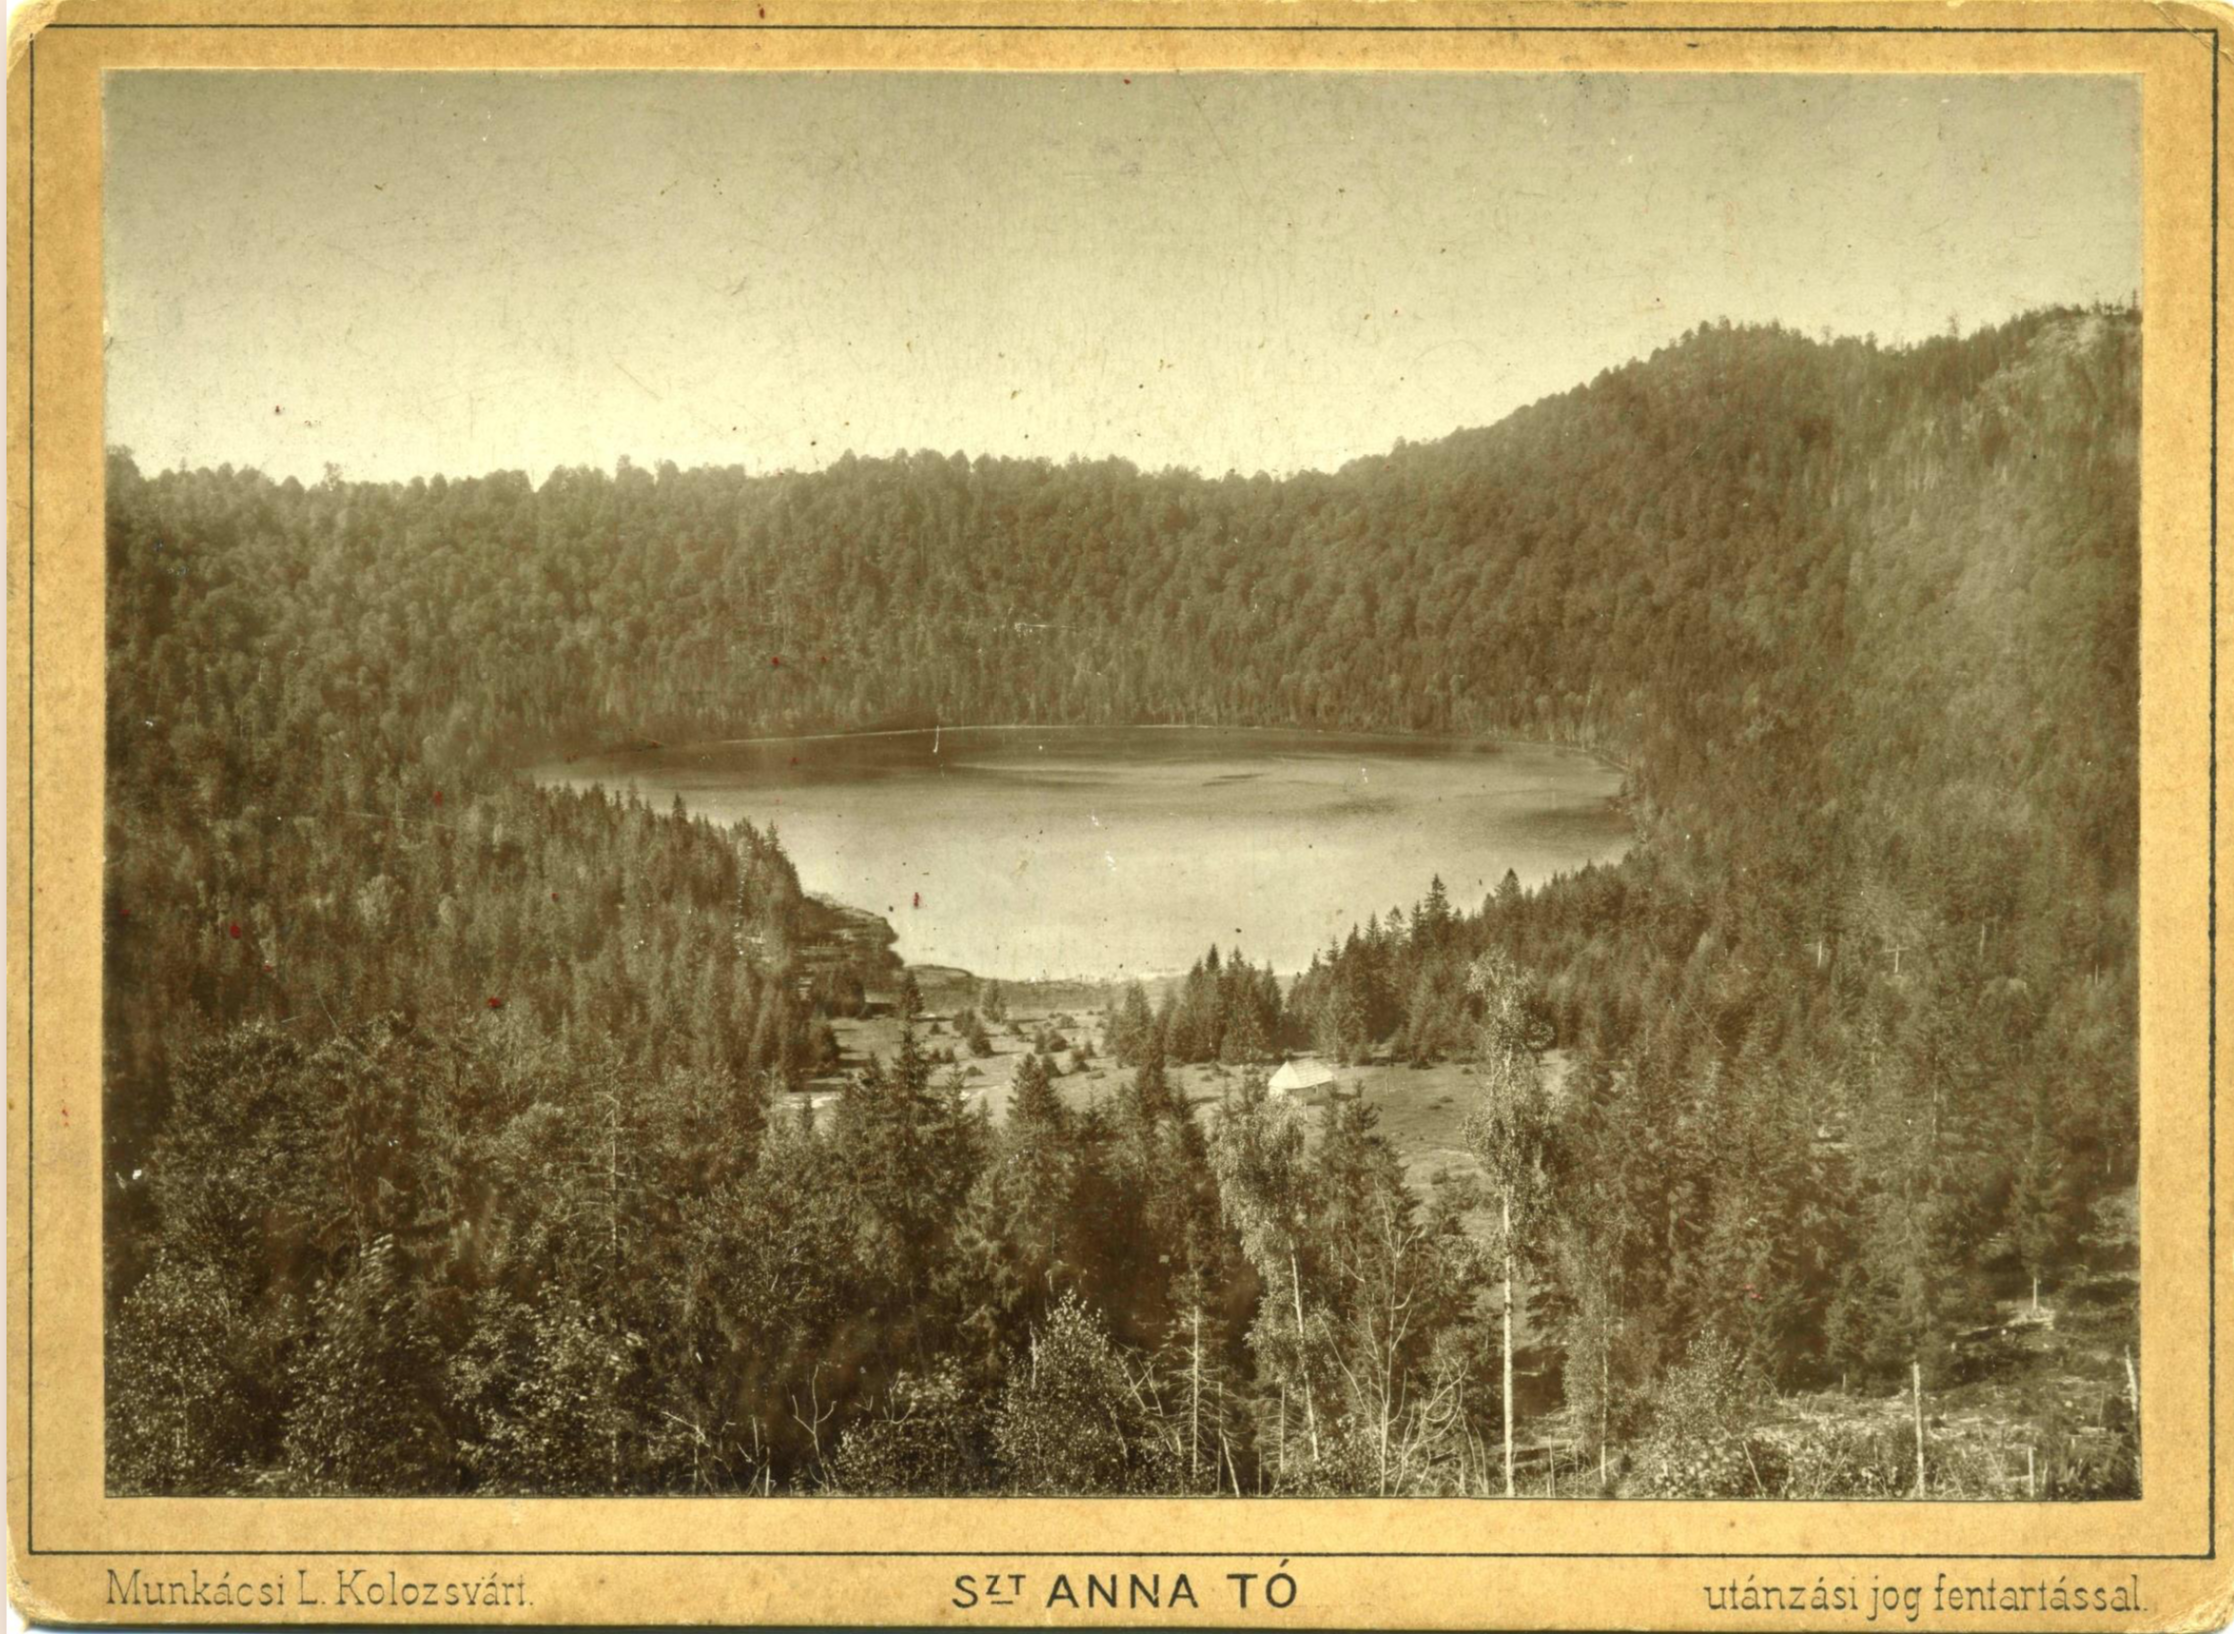 Postcard from Lake St. Anne